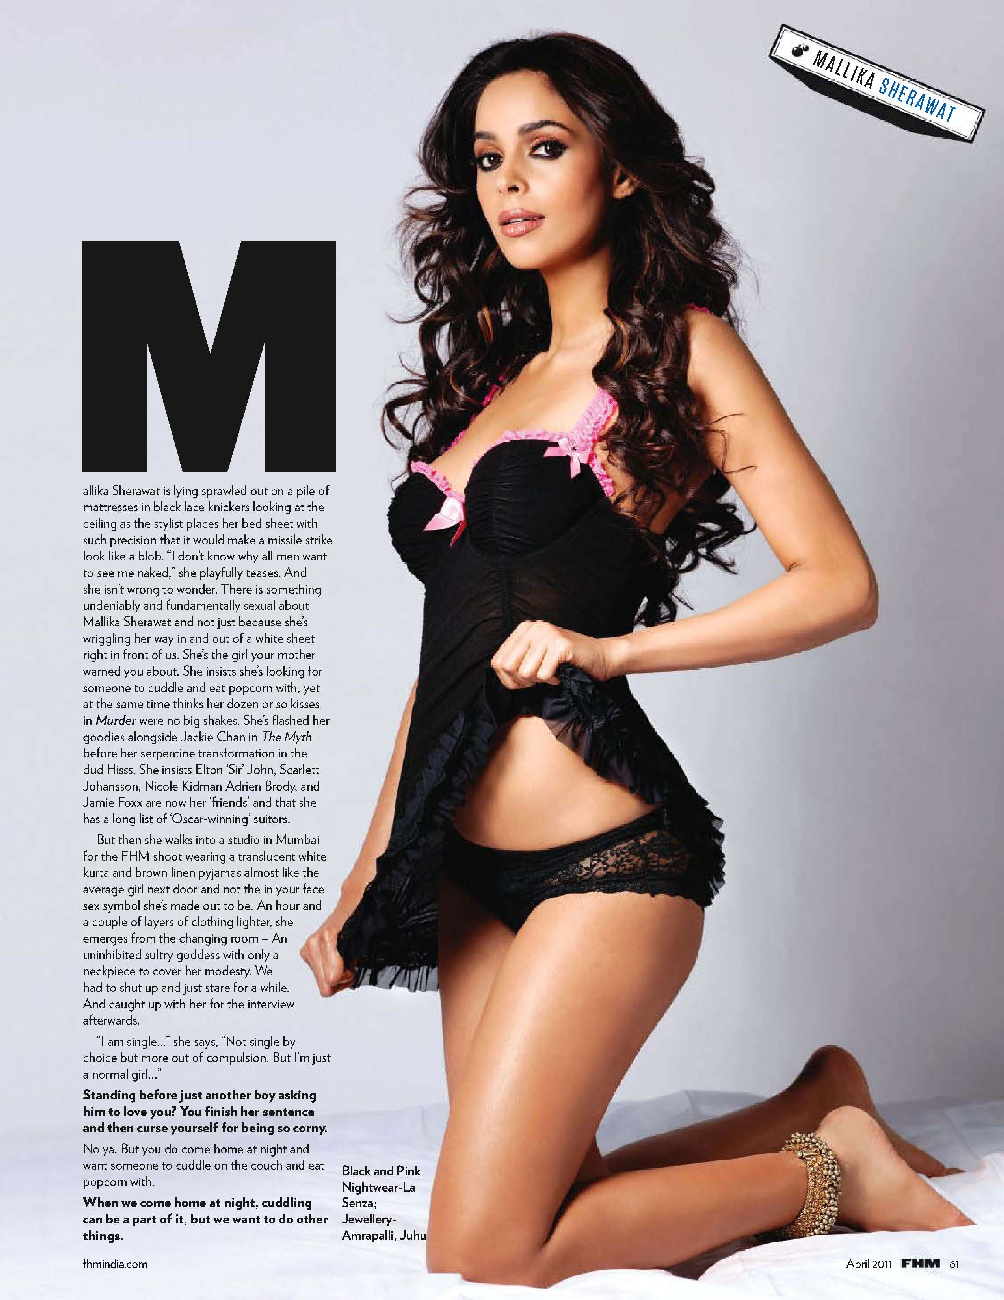 Mallika-Sherawat-Hot-On-FHM-India-April-2011-Stills-HQ-5